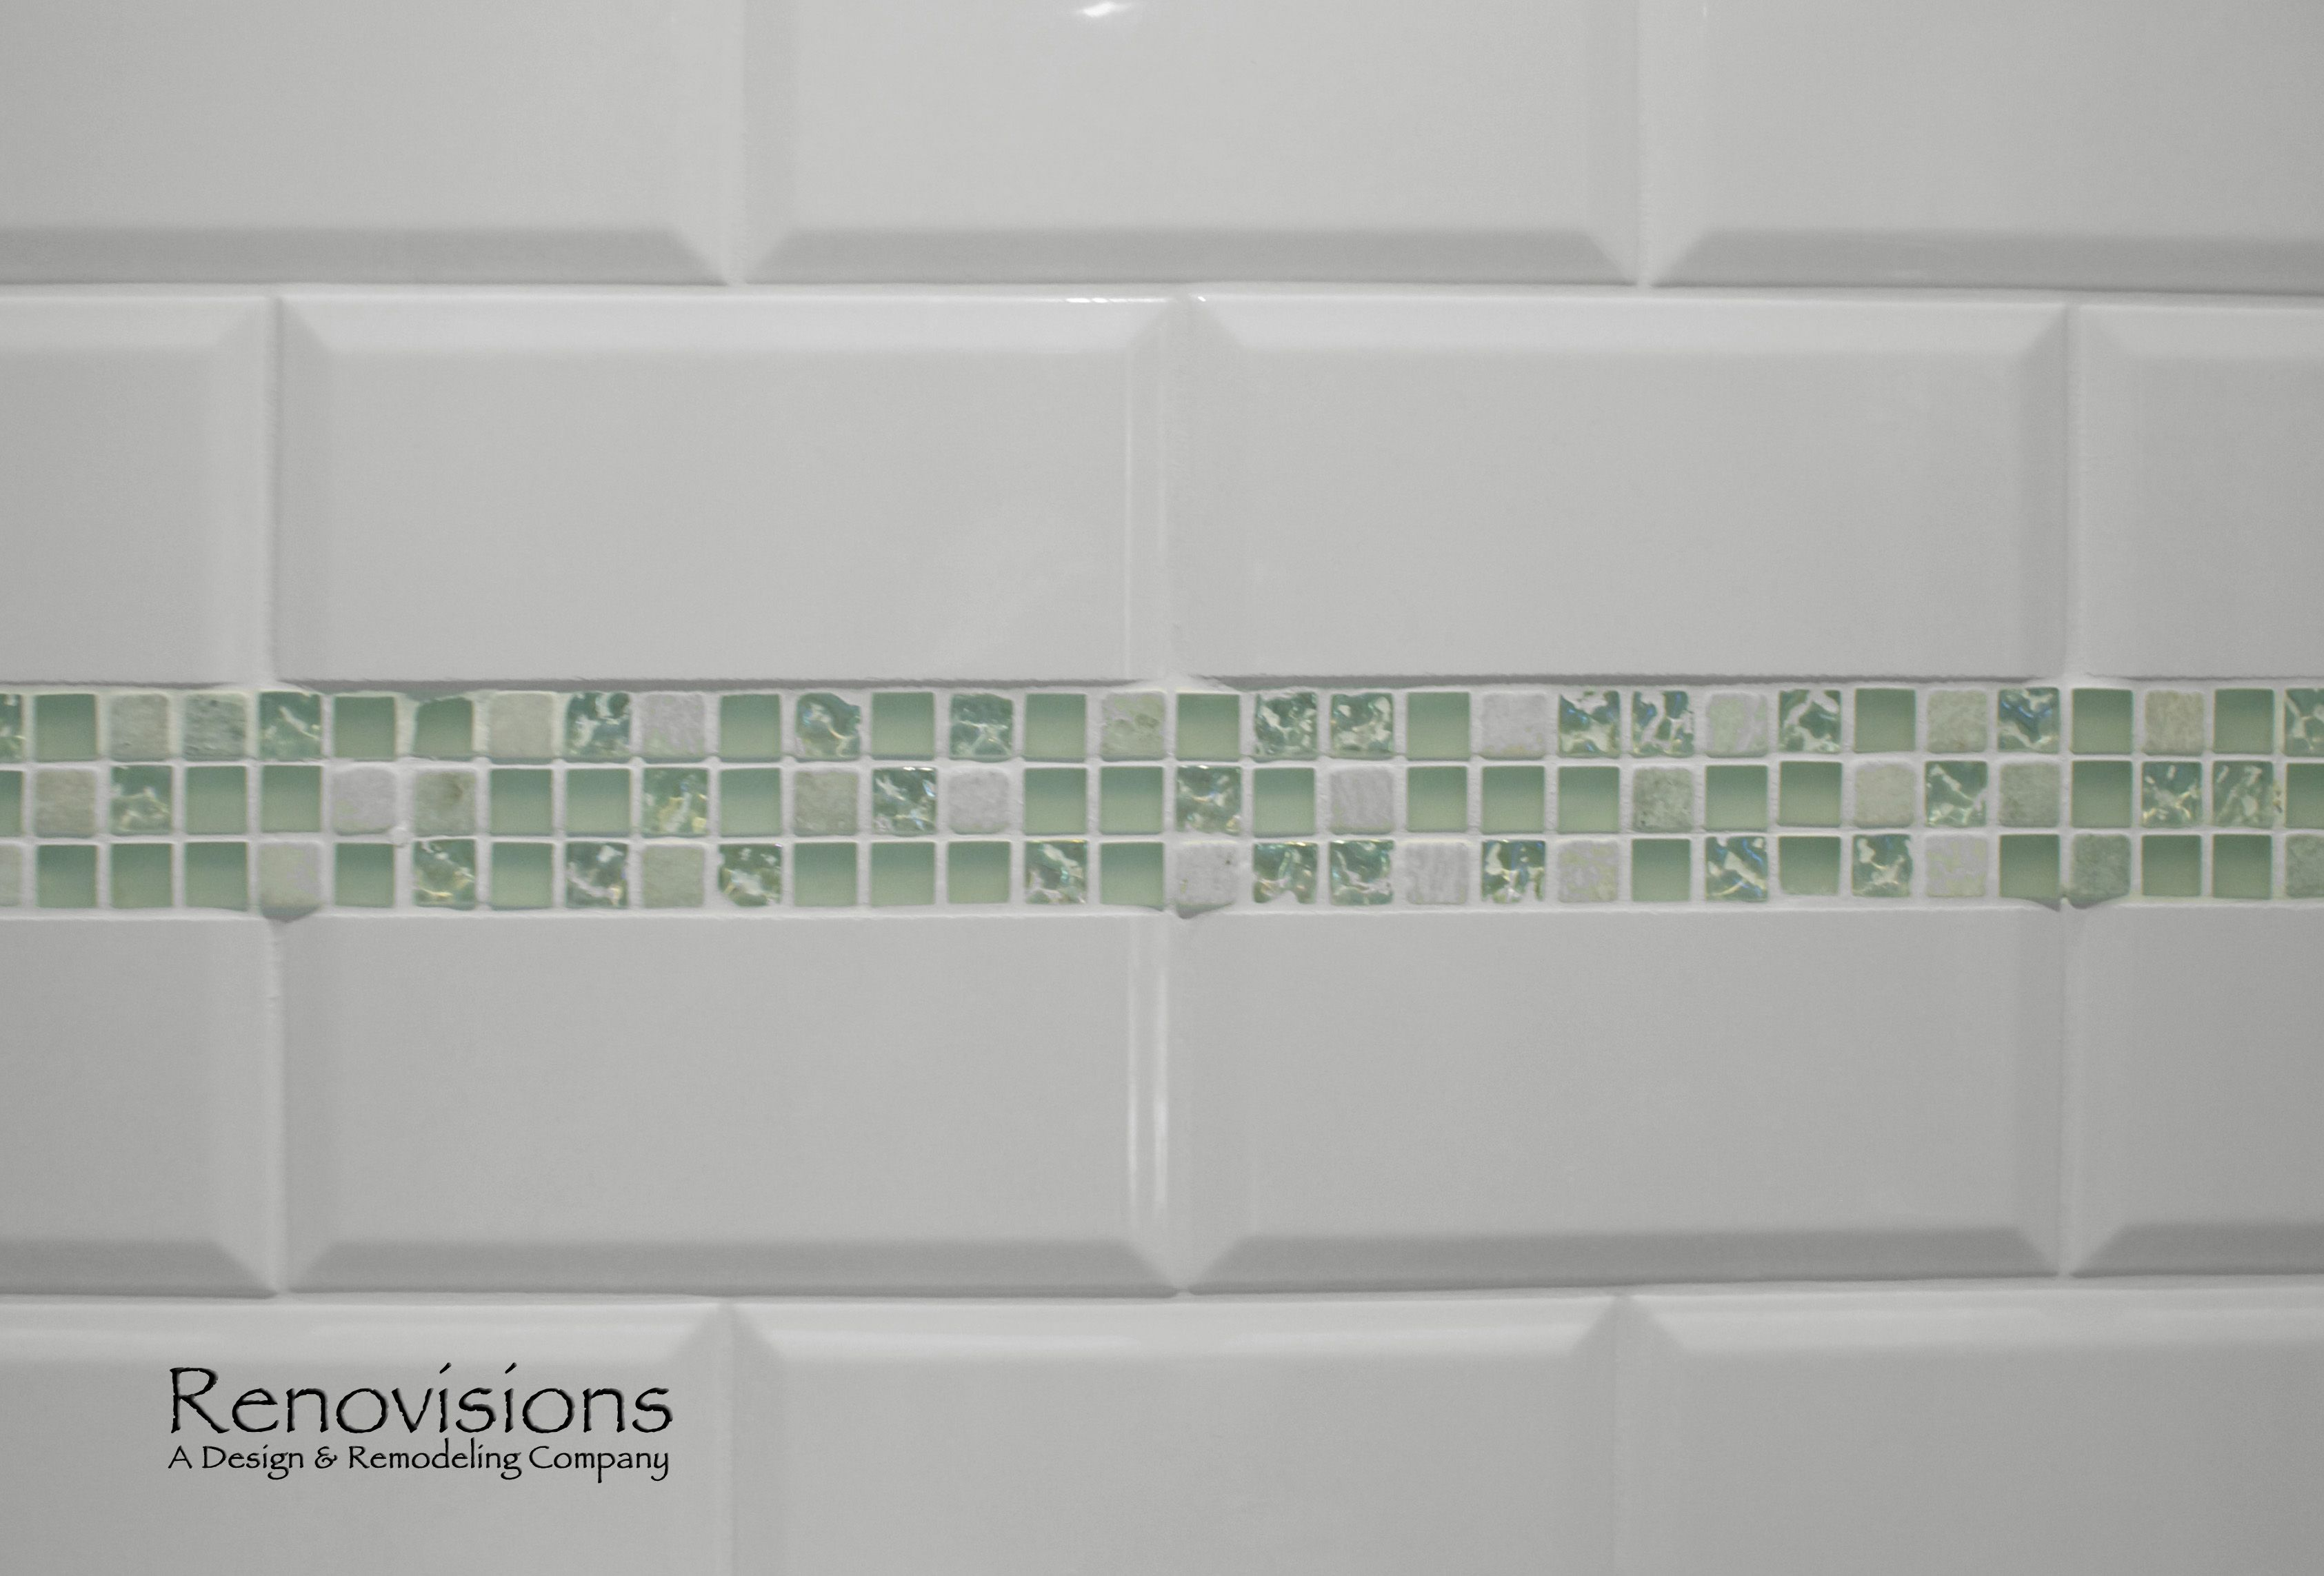 Bathroom remodel by renovisions beveled subway tile decorative bathroom remodel by renovisions beveled subway tile decorative sea glass tile border dailygadgetfo Images